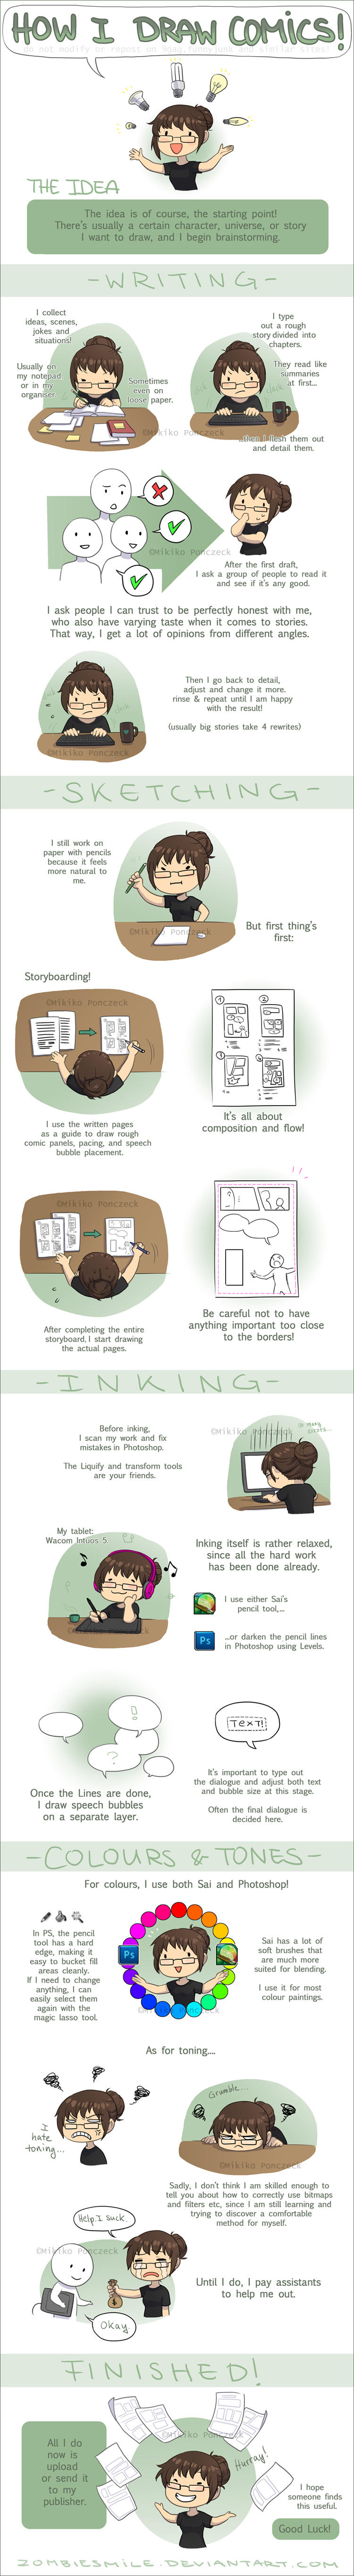 How I Draw Comics by Zombiesmile